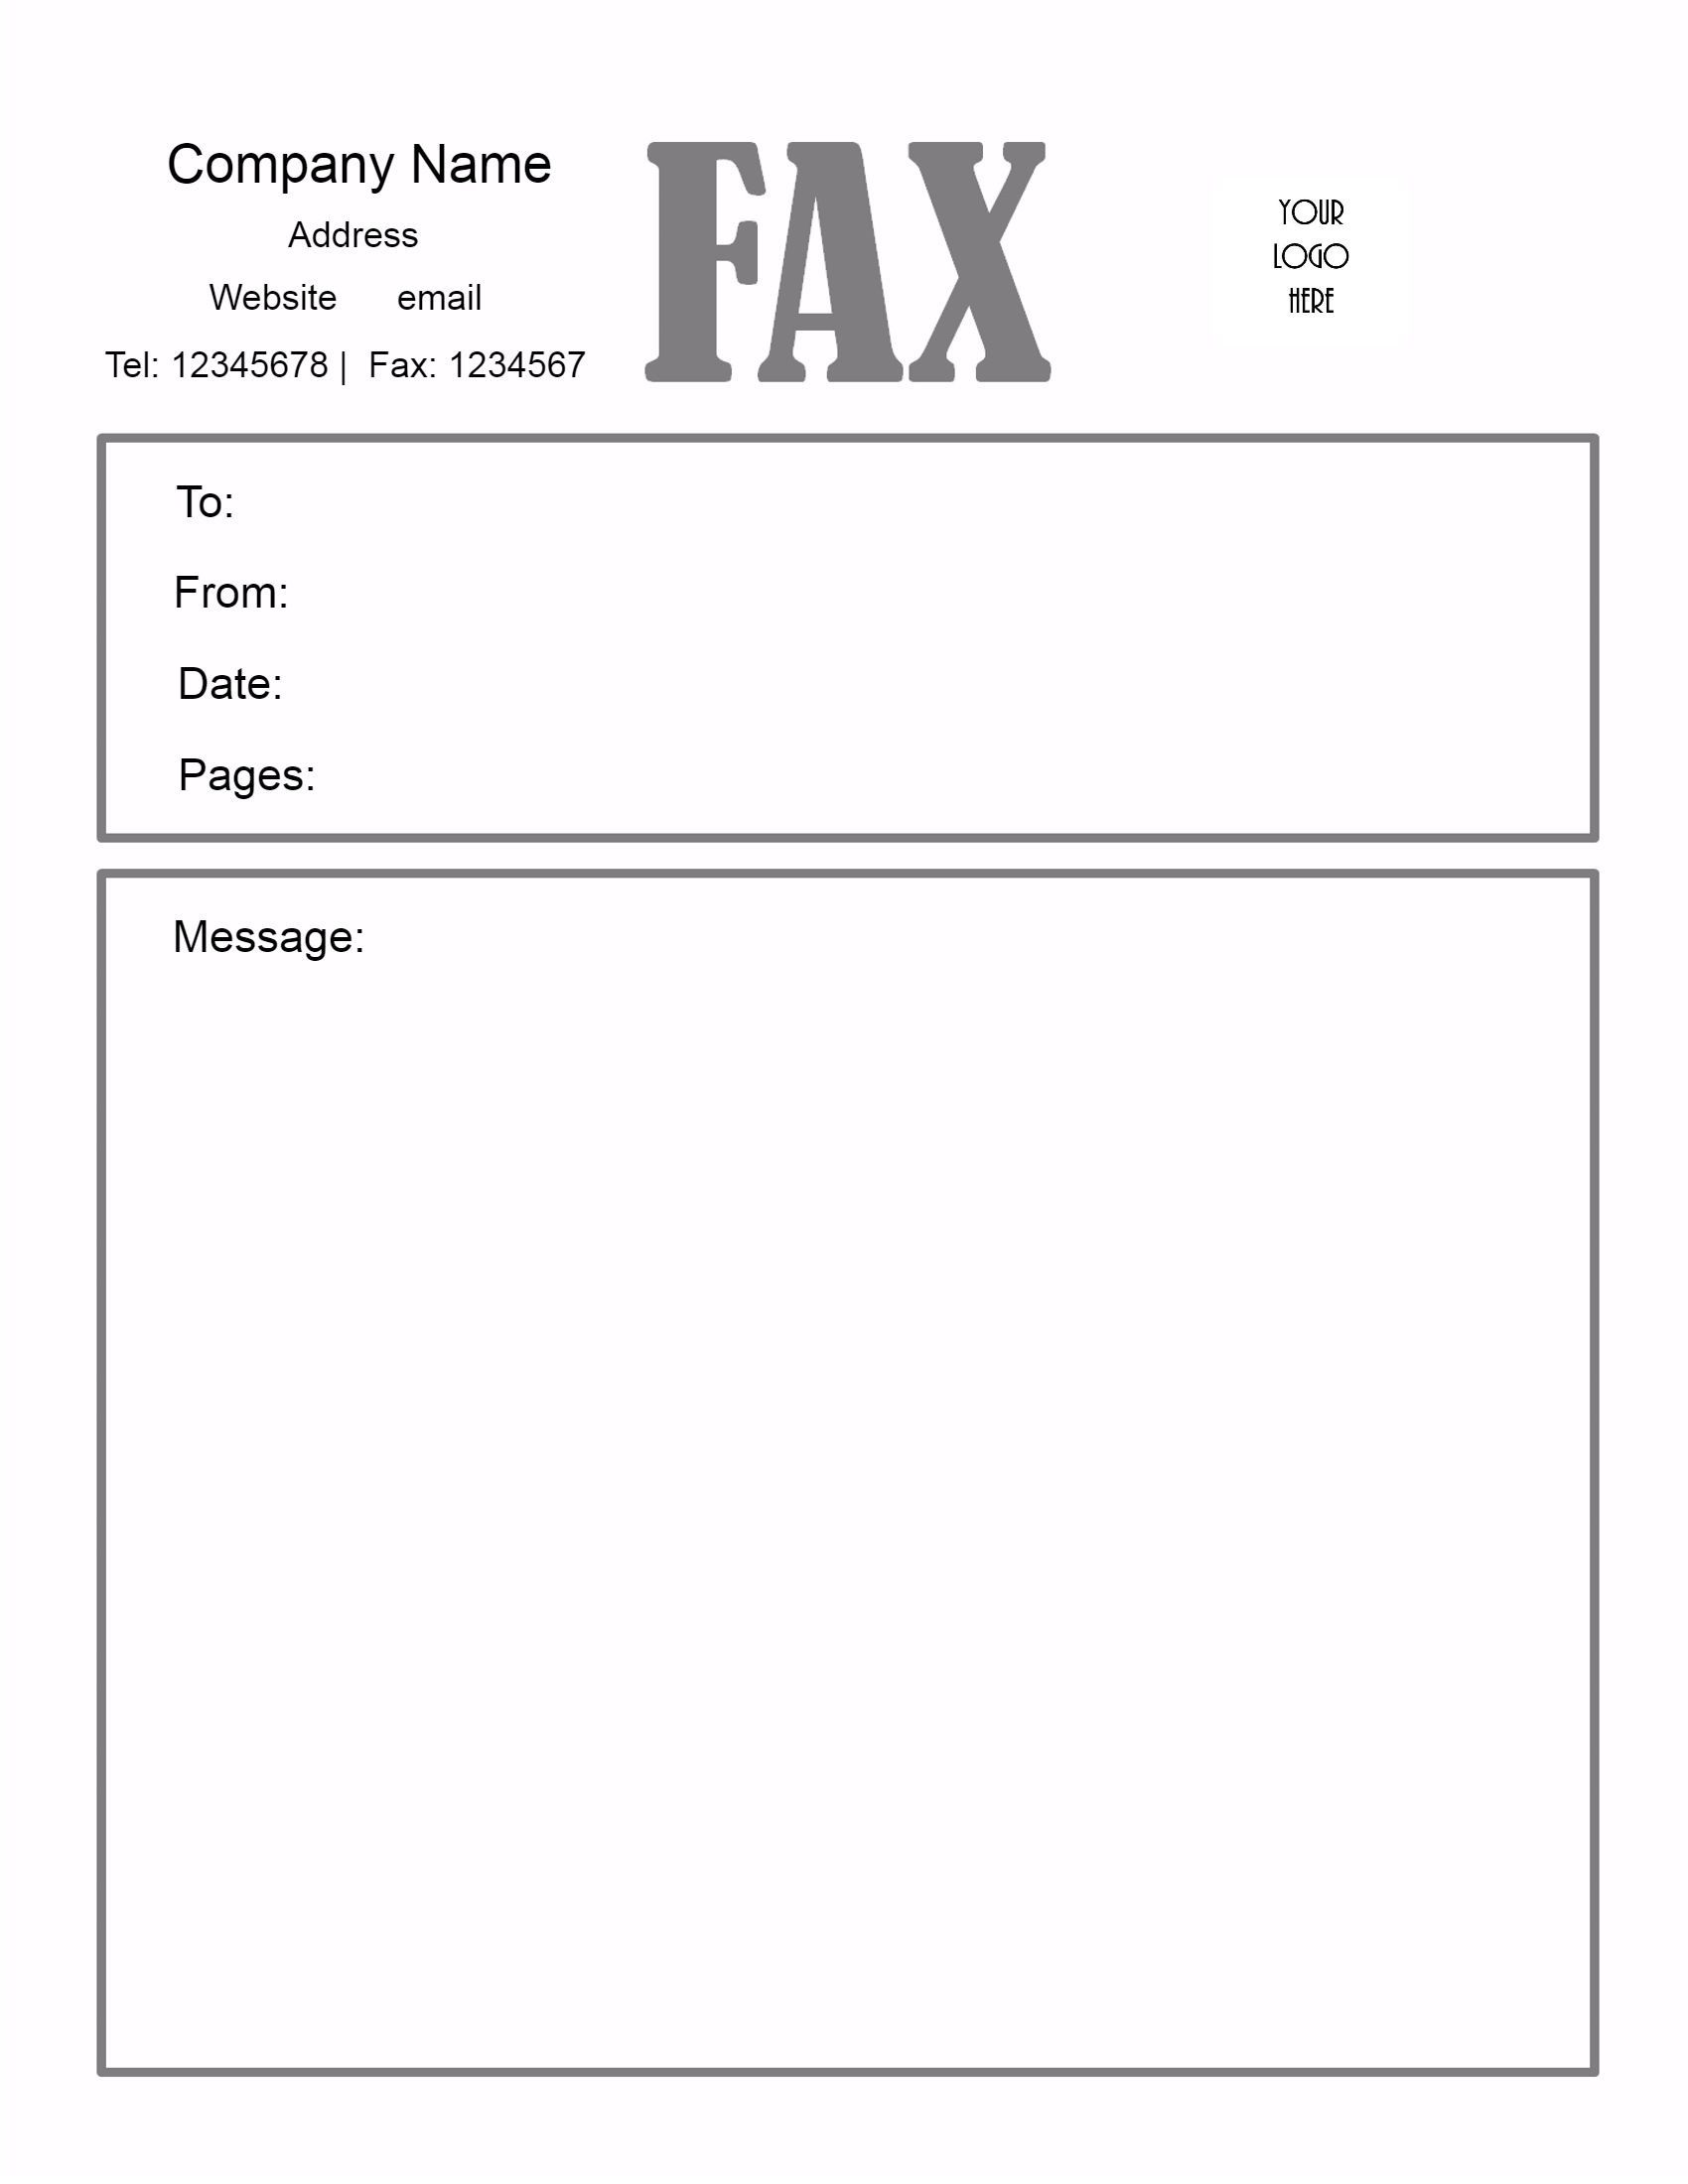 005 Awesome General Fax Cover Letter Template Inspiration  Sheet Word Confidential ExampleFull